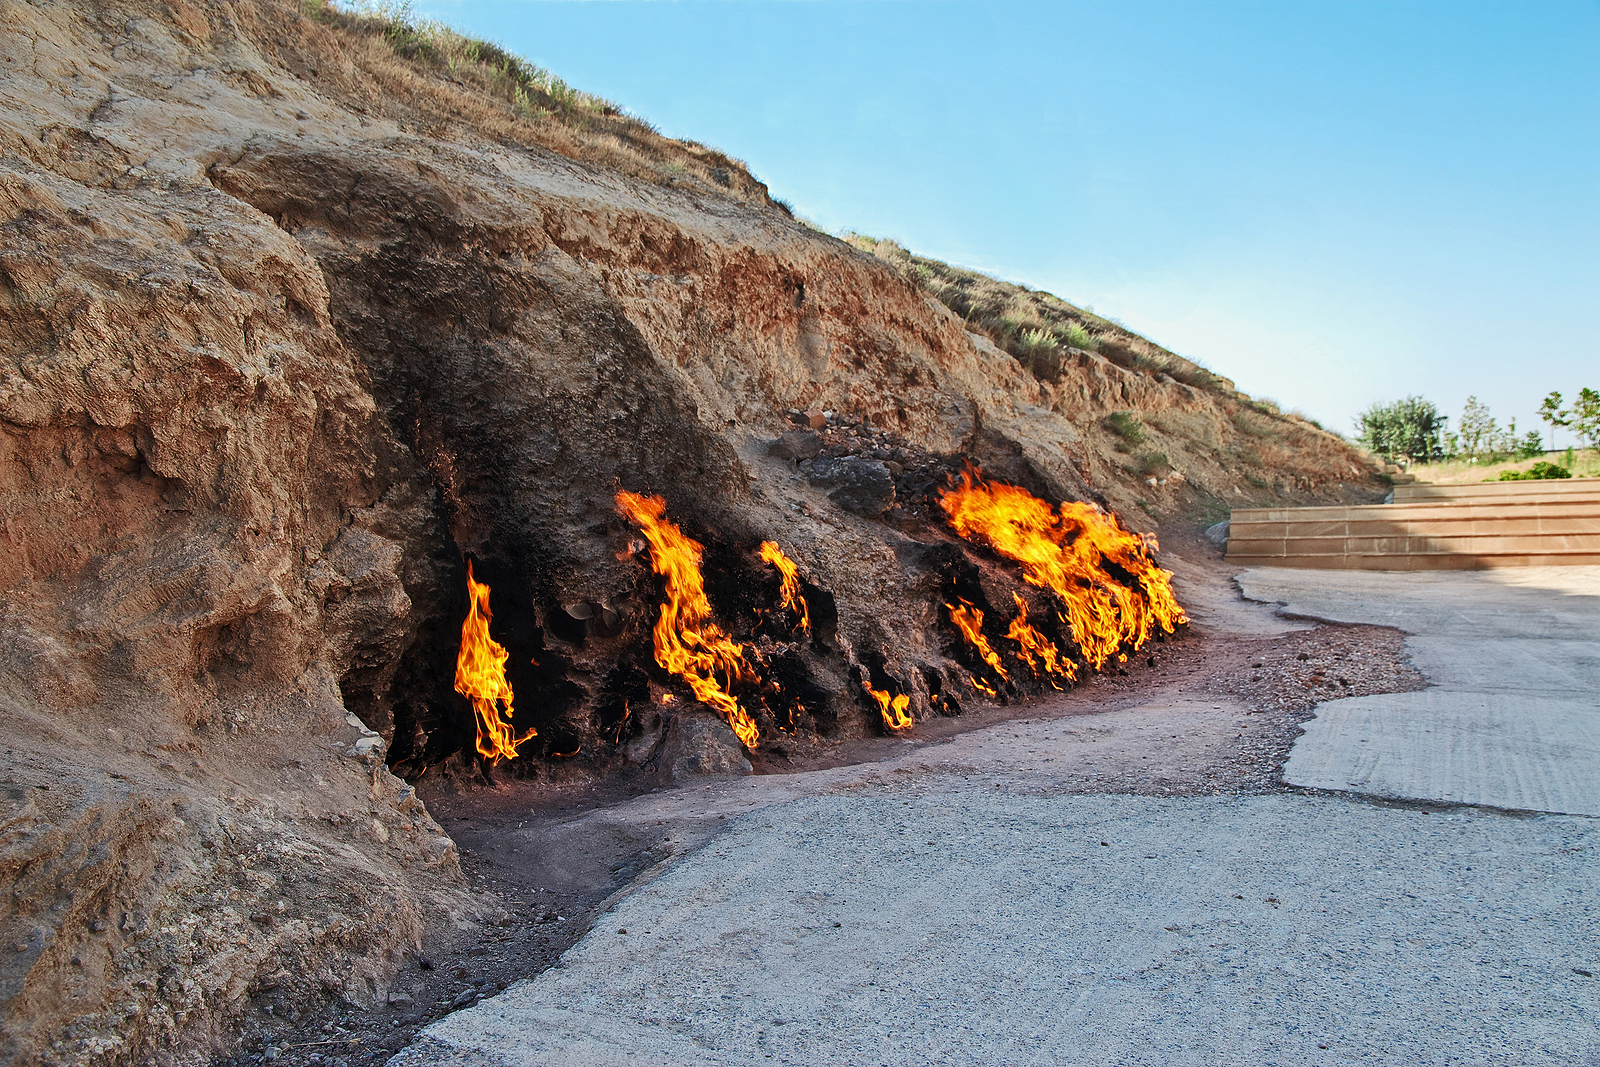 Azerbaijan, quite literally the land of fire